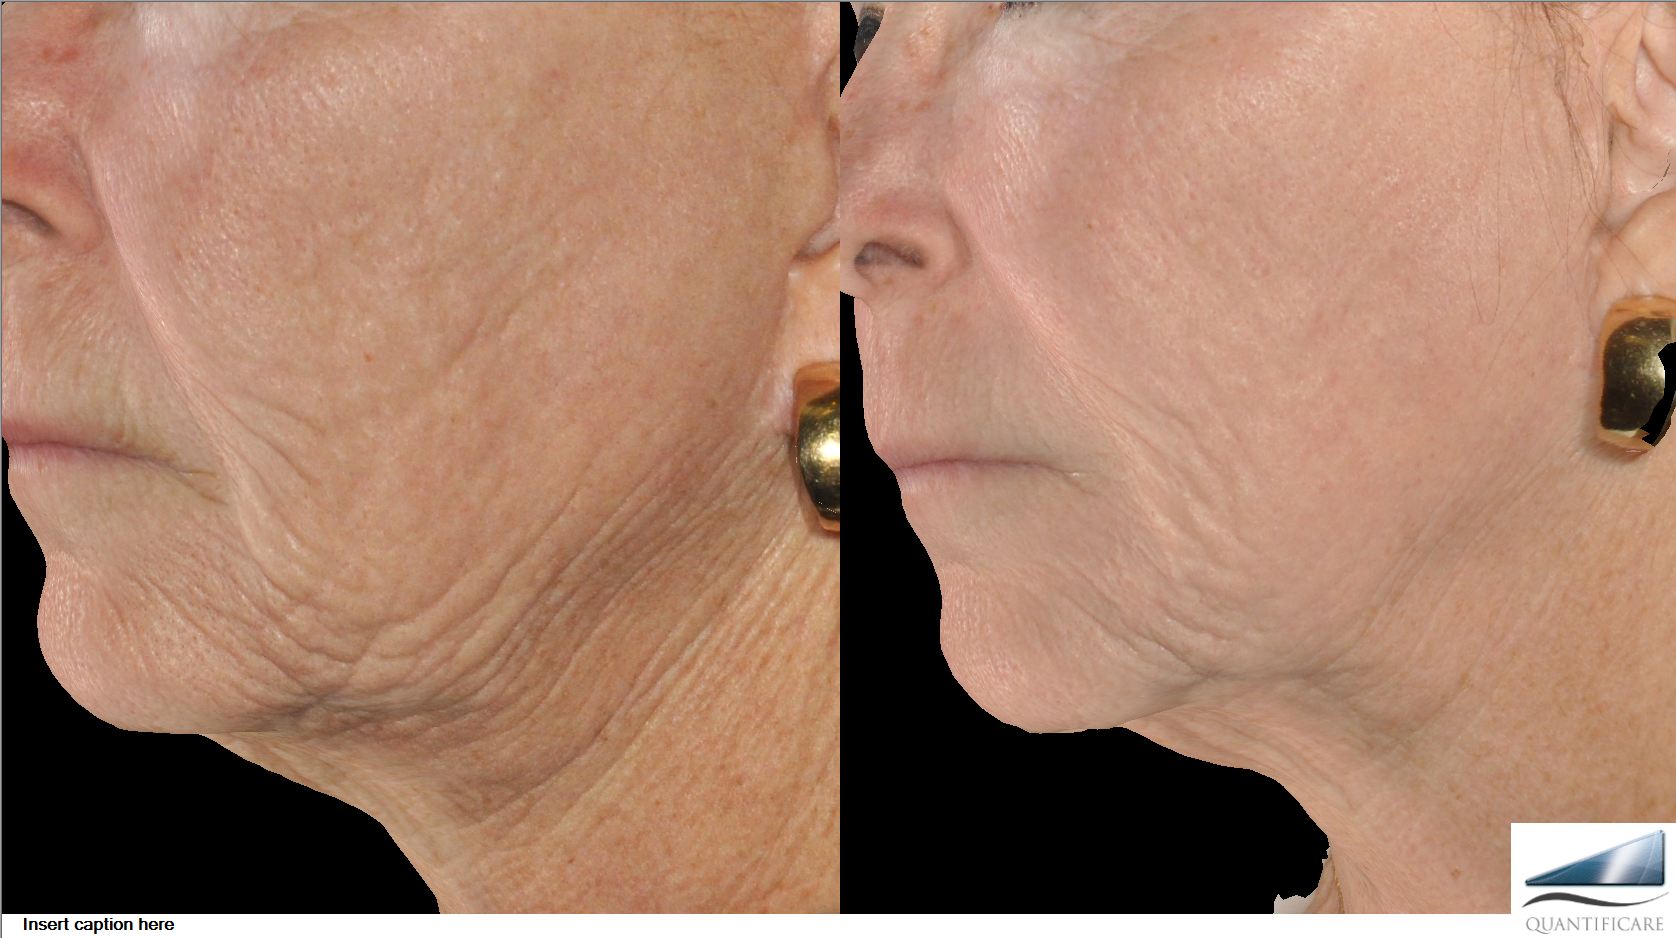 Skin Tightening likewise Dr Steve Weiner Finally A Radiofrequency Rf Skin Tightening Device That Makes Sense Infini By Lutronic together with Watch also 4835146 as well Why People Prefer Laser Hair Removal. on the face for radio frequency